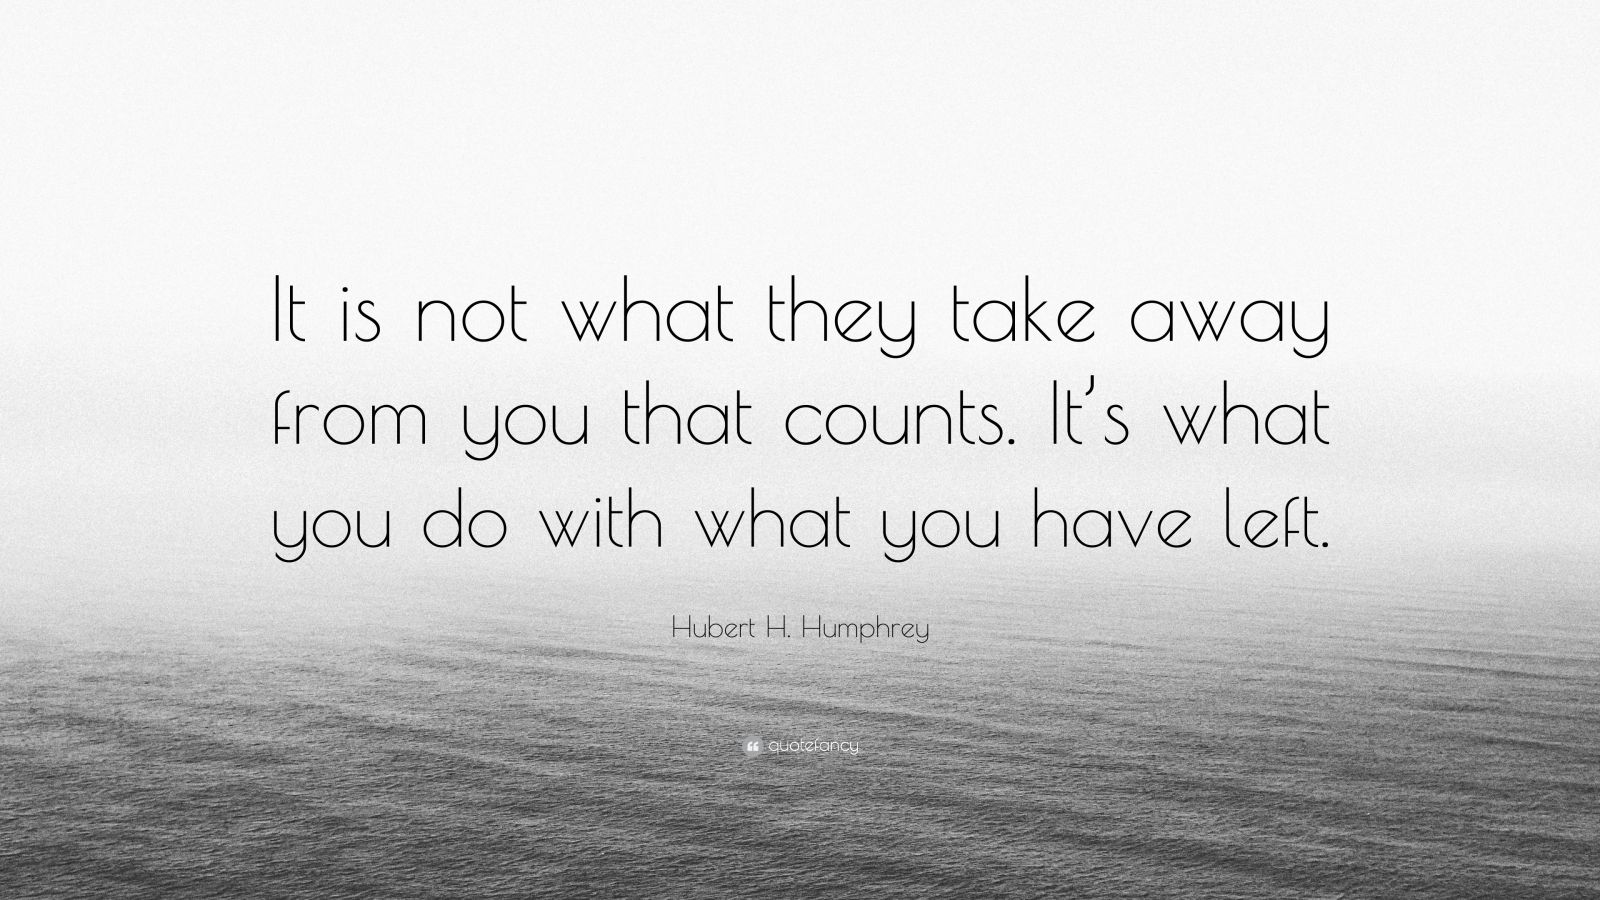 """Hubert H. Humphrey Quote: """"It is not what they take away from you that counts. It's what you do with what you have left."""""""